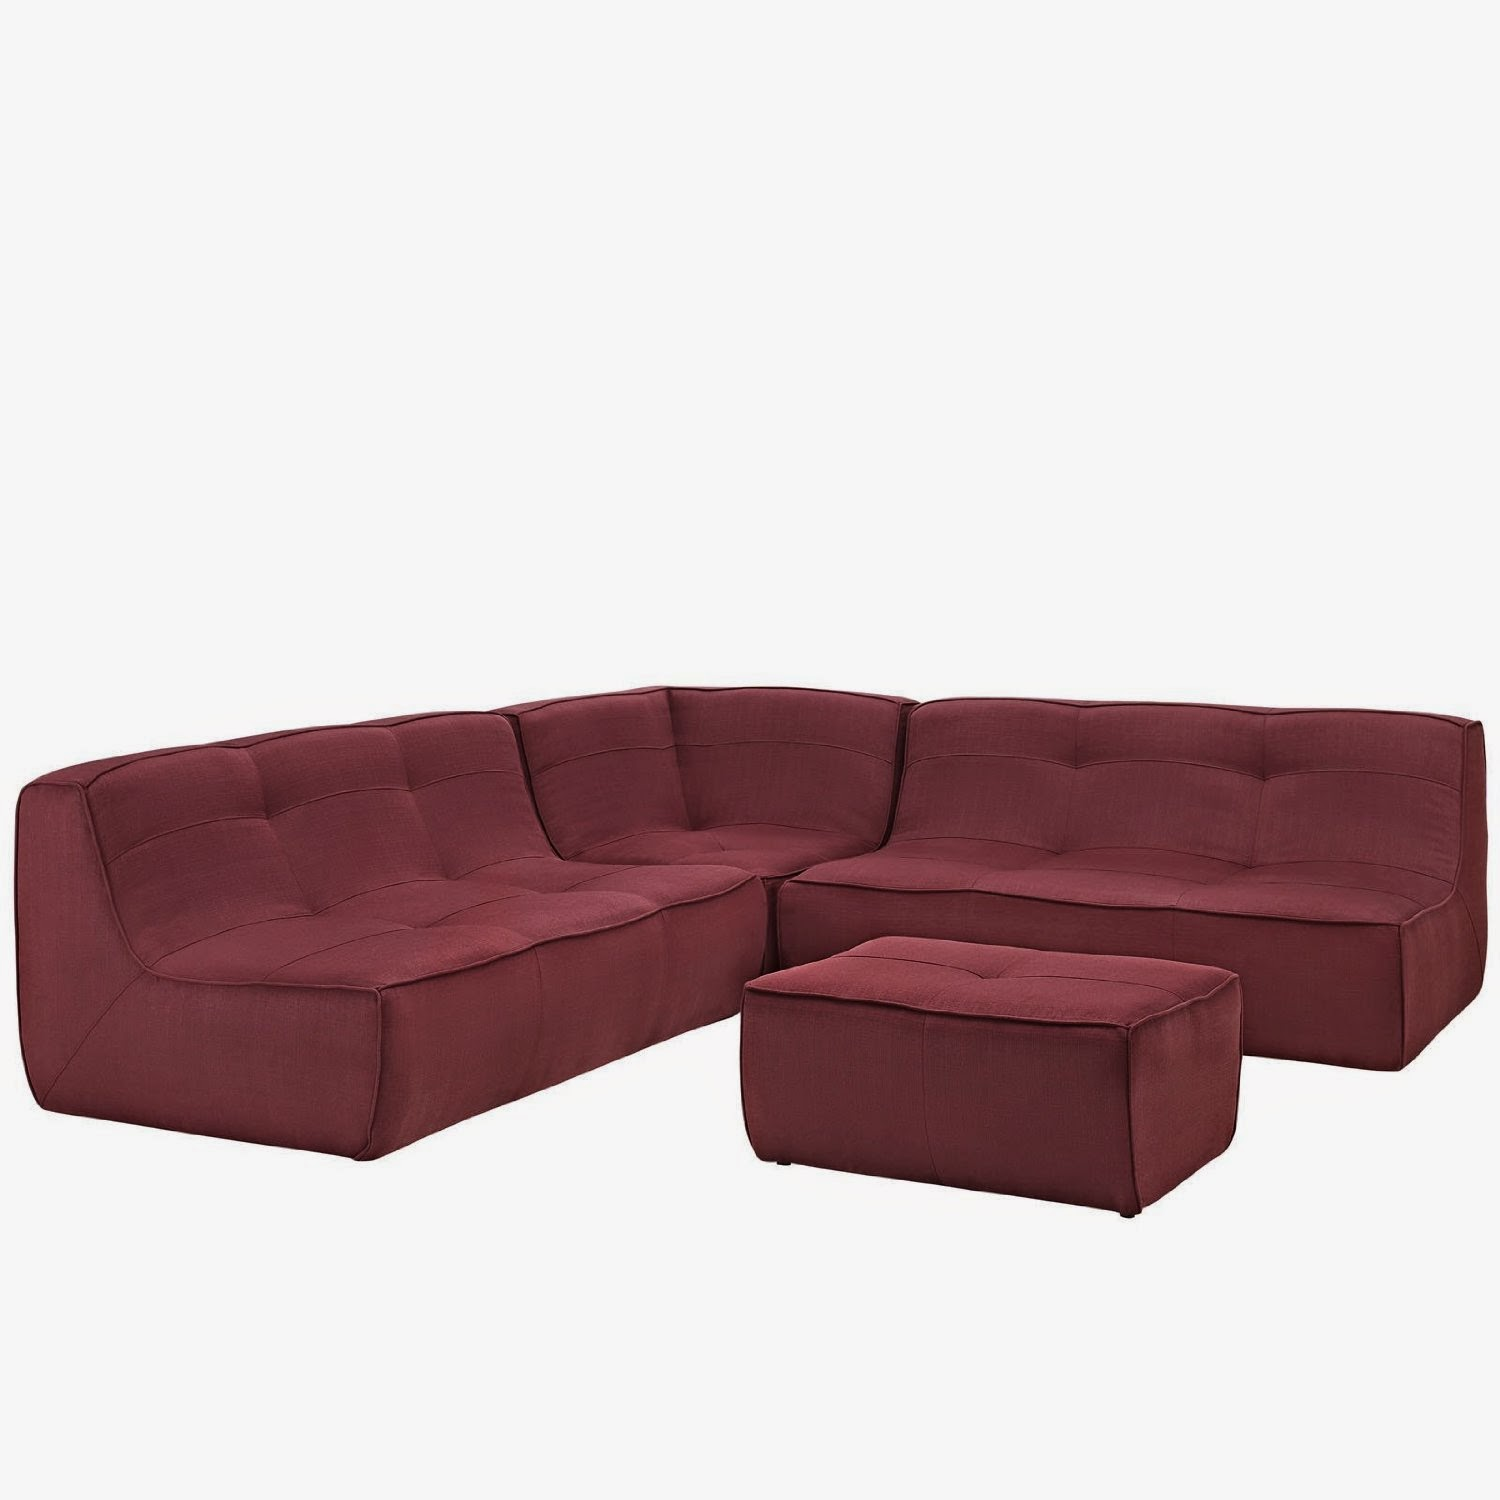 Curved sofa couch for sale curved leather sofa contemporary for Curved sectional sofa amazon